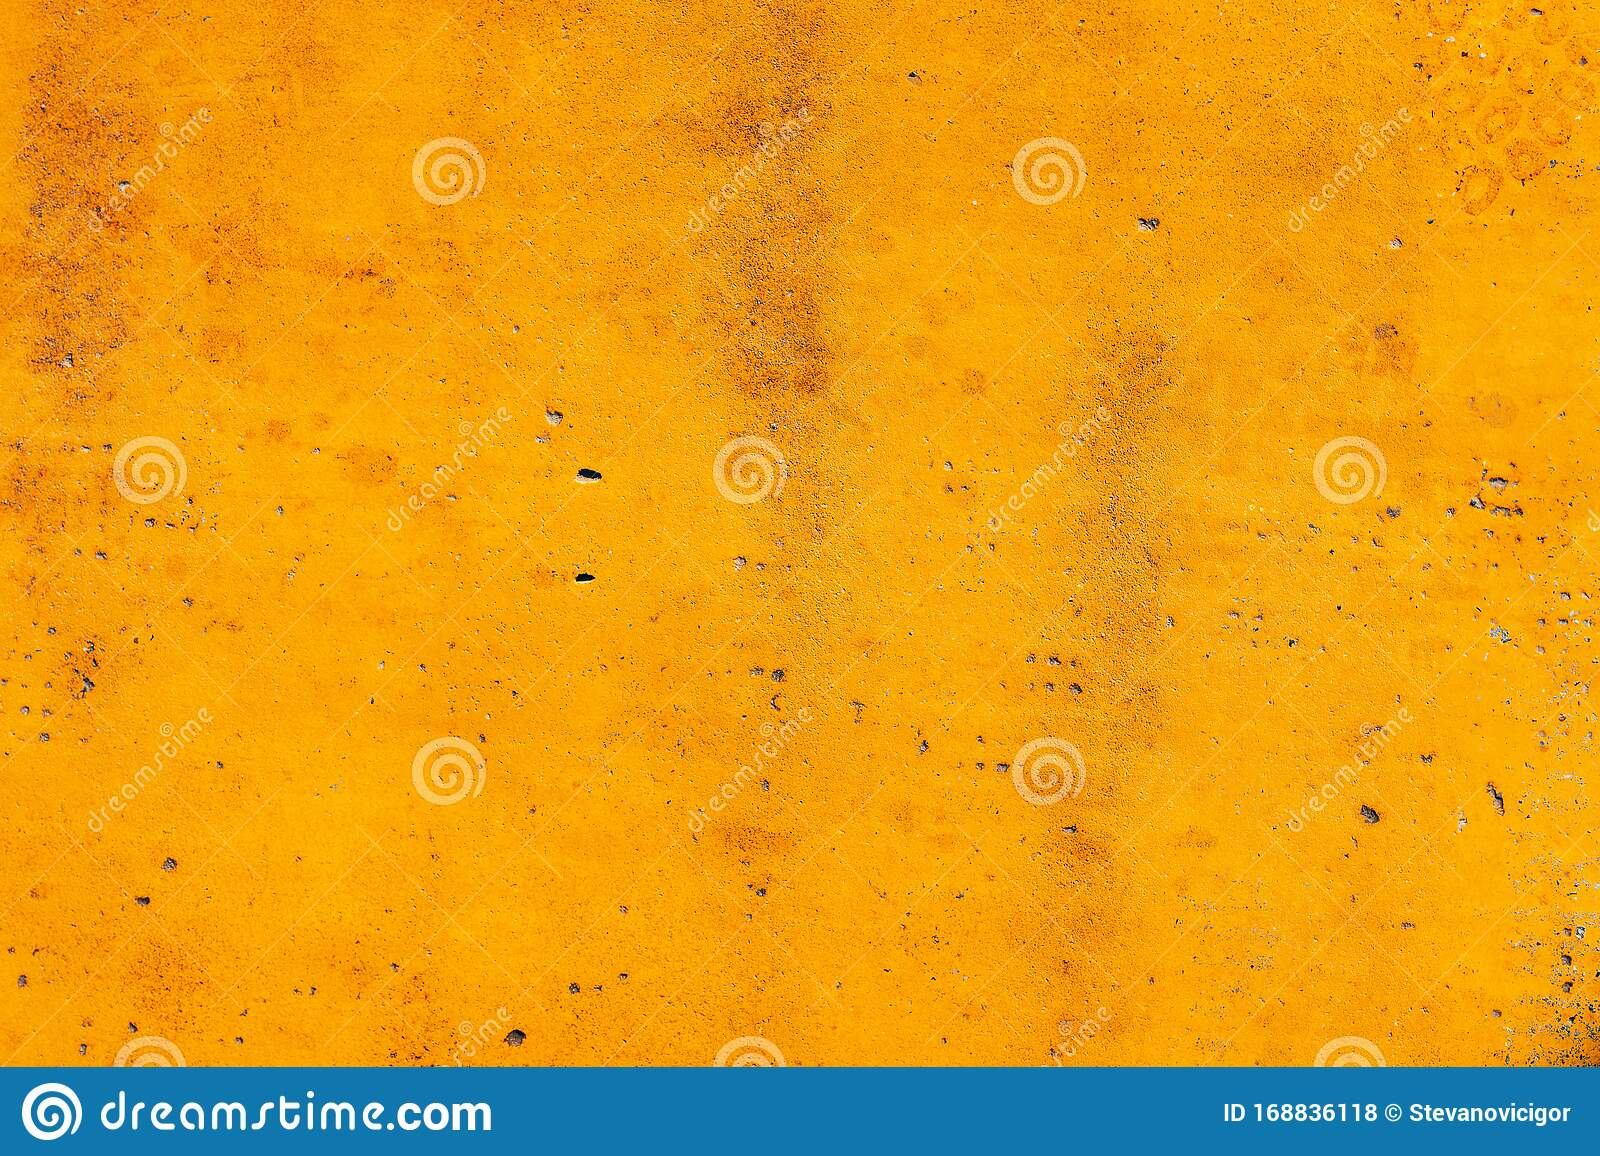 365 Concrete Flooring Painted Photos Free Royalty Free Stock Photos From Dreamstime